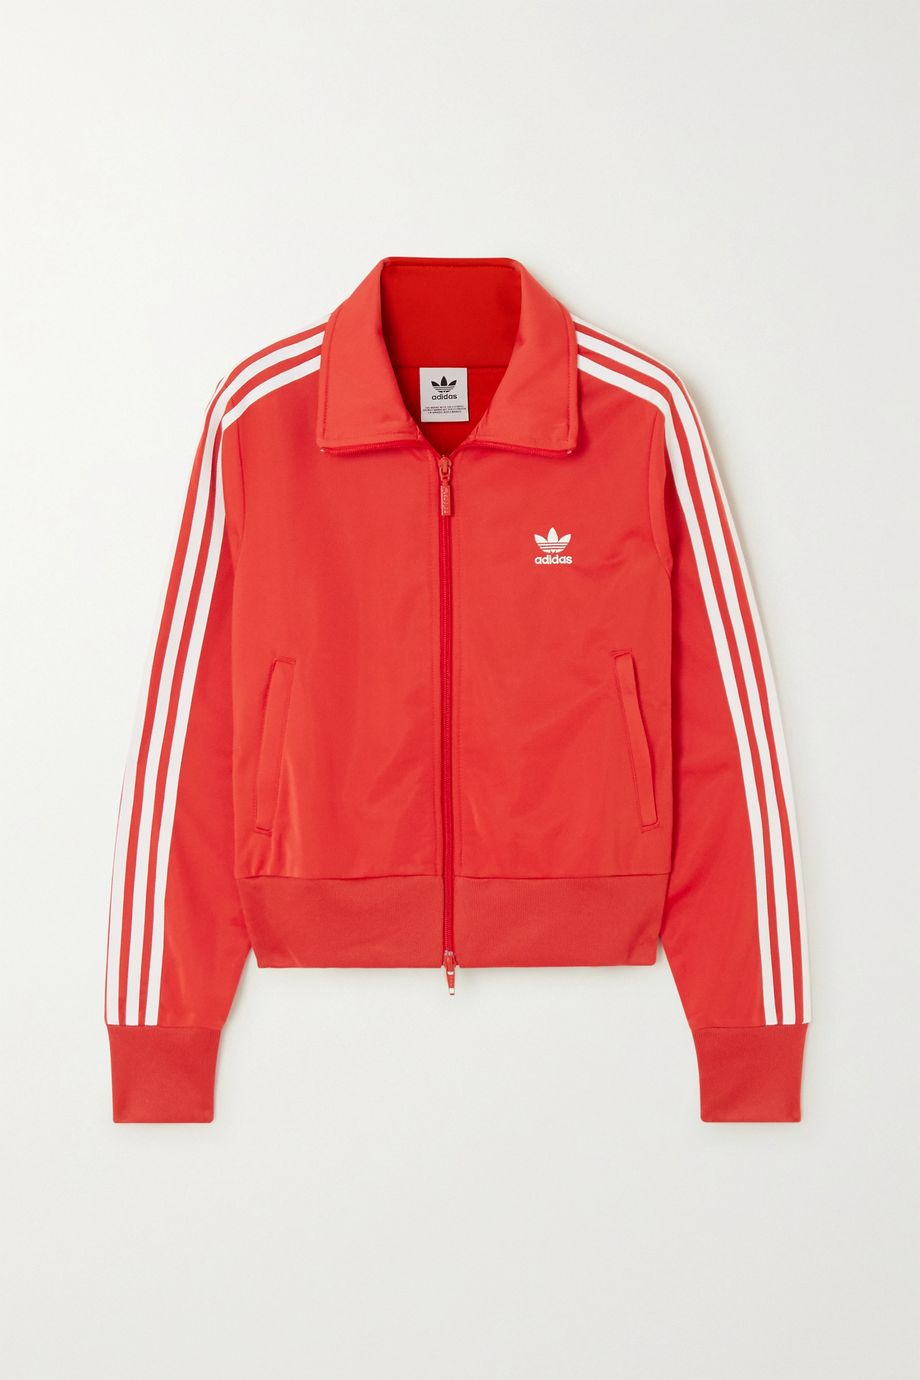 adidas Originals Firebird striped satin-jersey track jacket